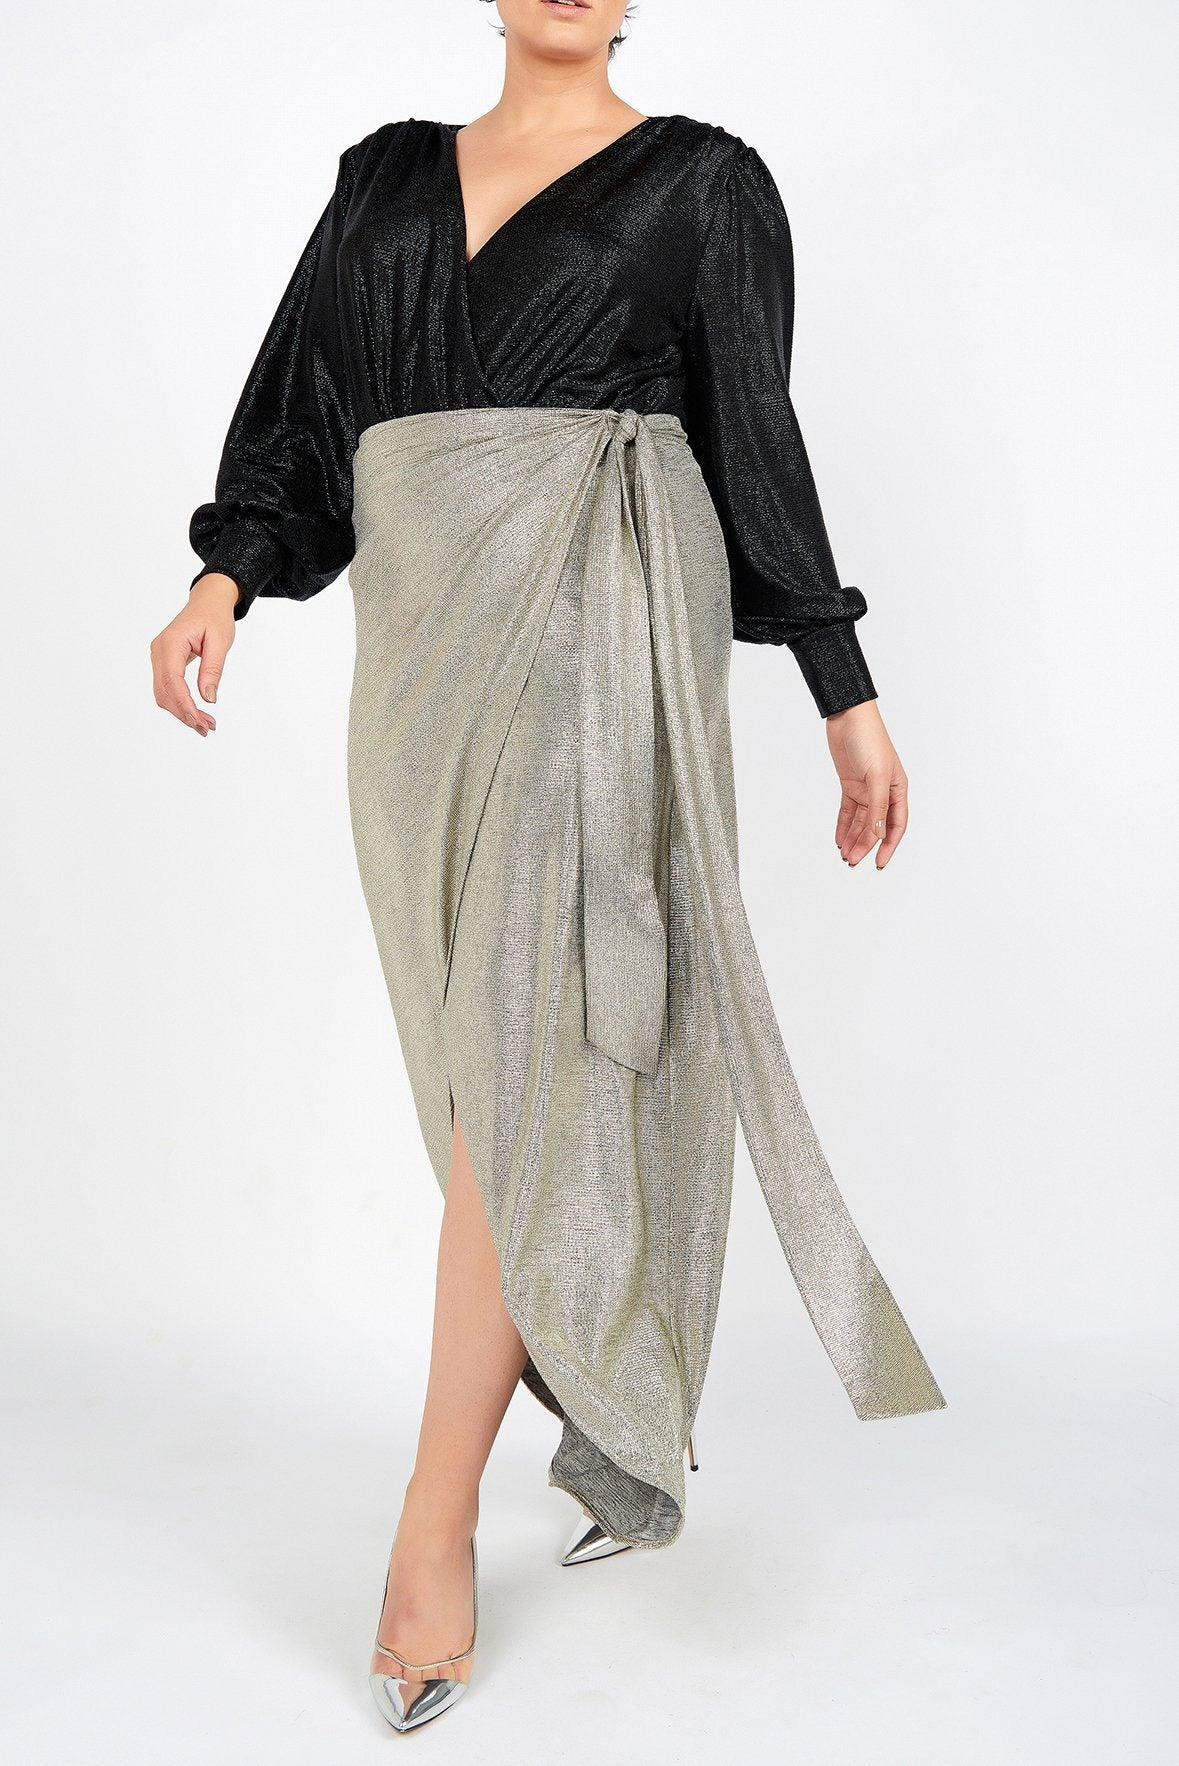 Carrie Silver Evening Sarong Skirt - Maer World